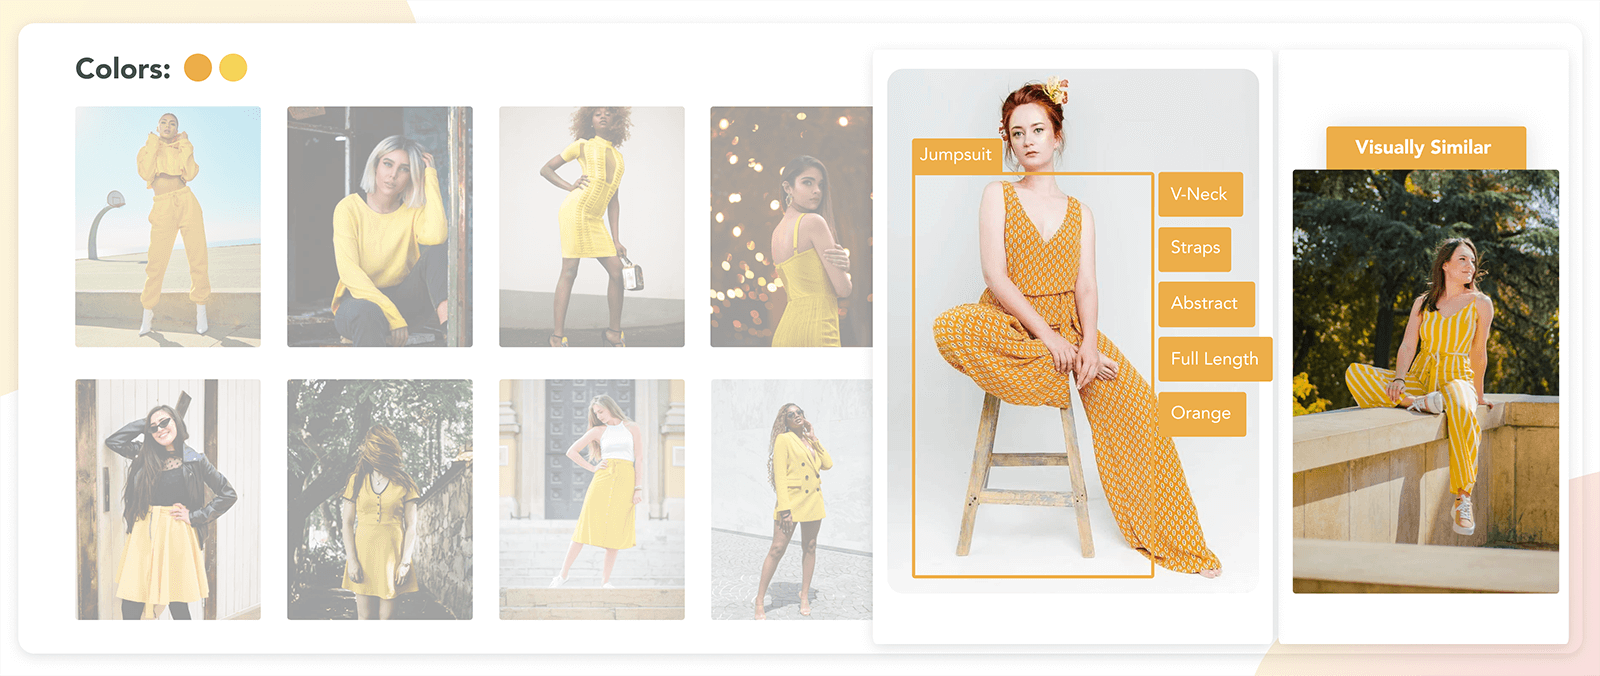 Visually similar recommendation and automated tags for an orange jumpsuit